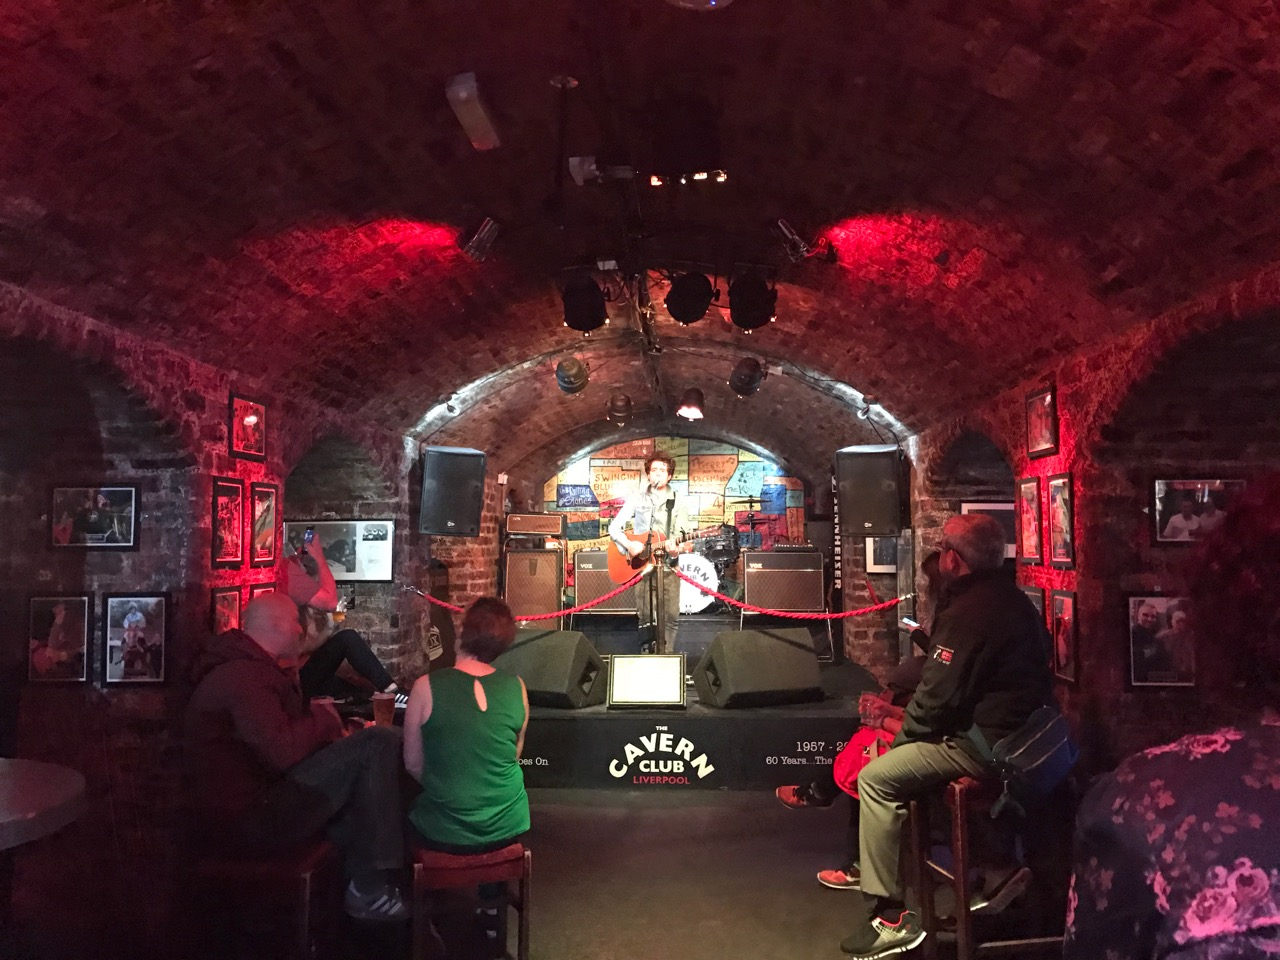 Live Music at the Cavern Club in Liverpool!